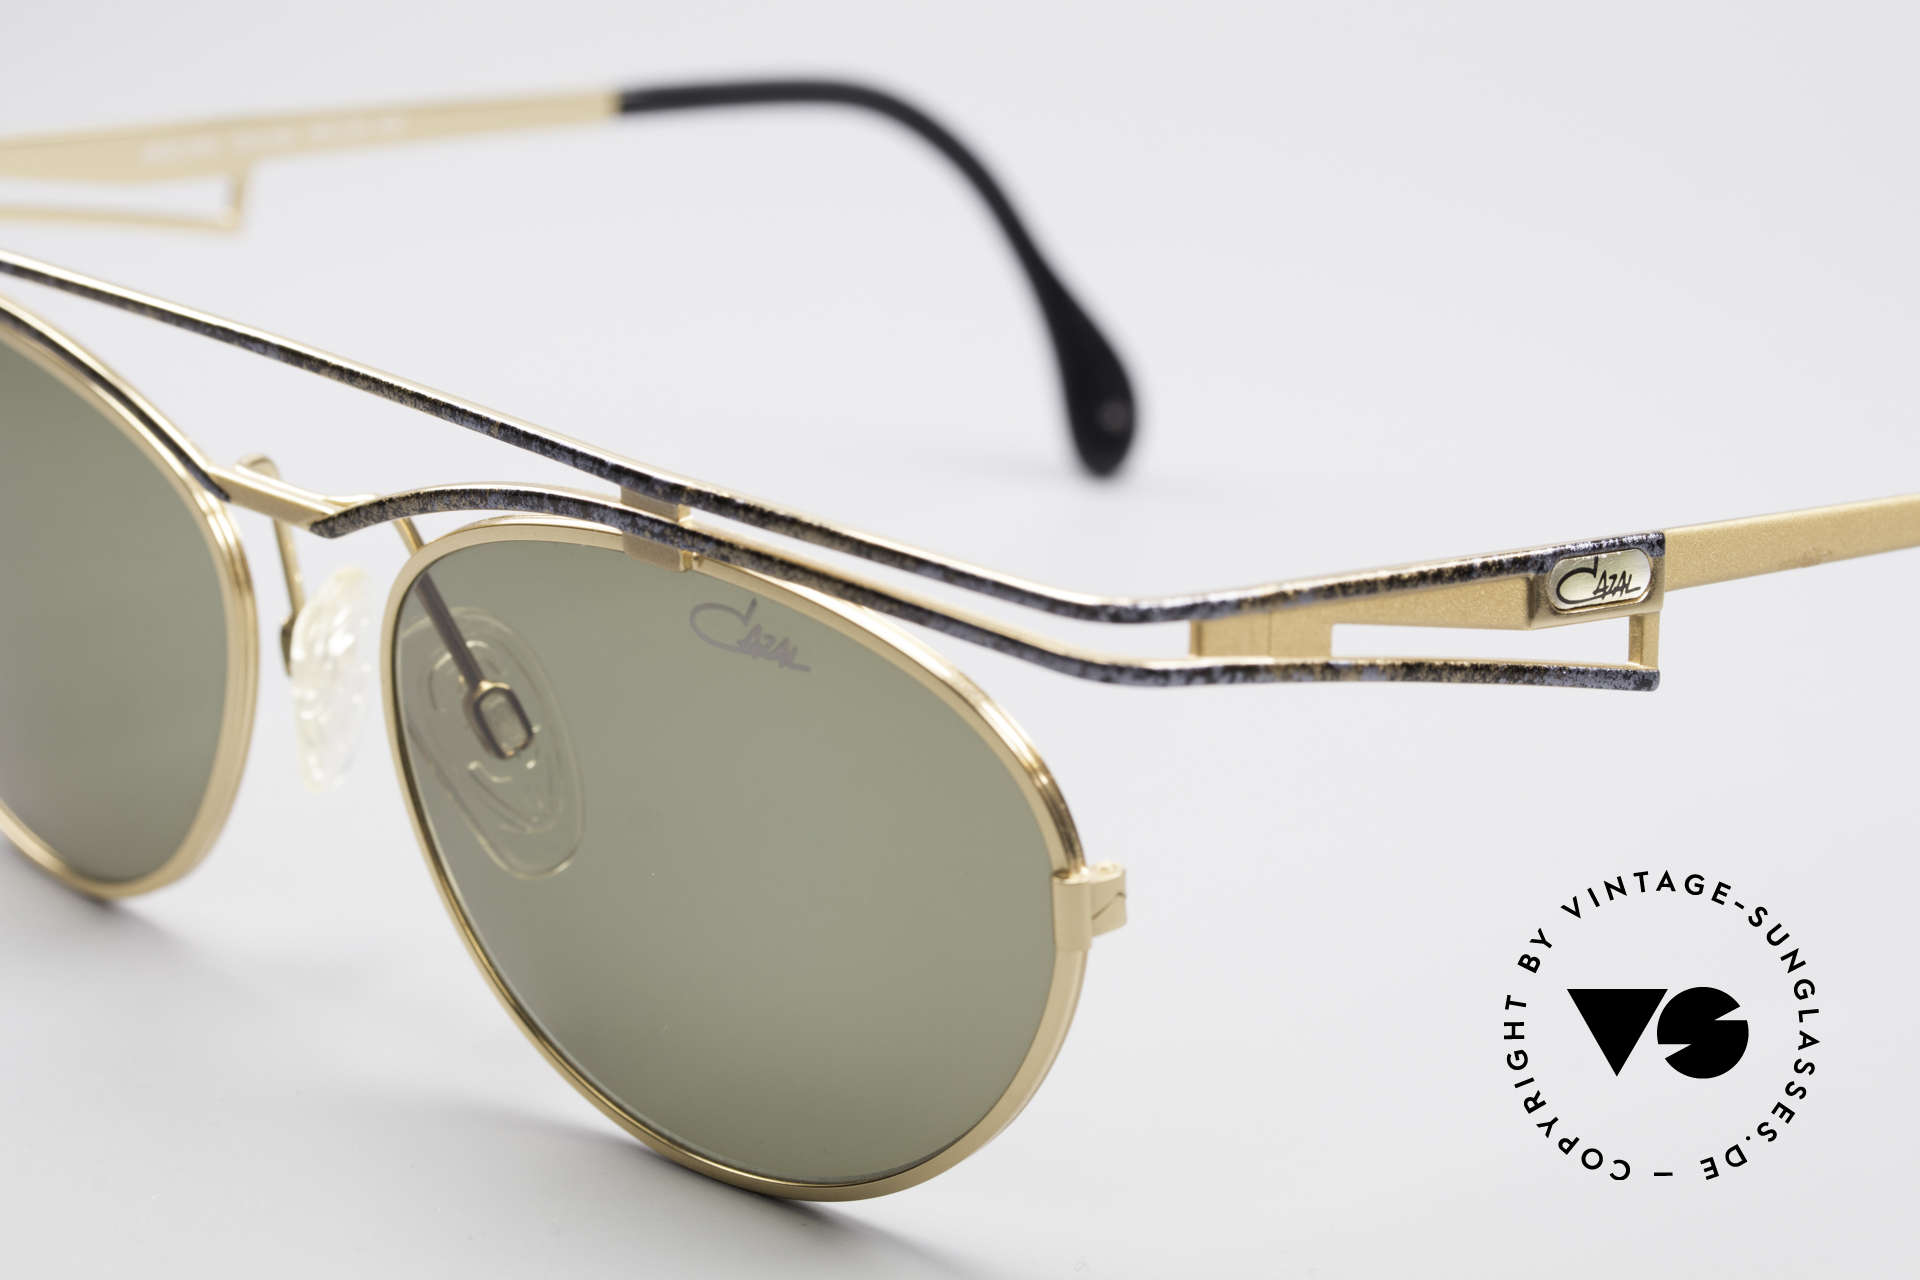 Cazal 970 Extraordinary Shades Women, never worn (like all our rare vintage Cazal sunglasses), Made for Women